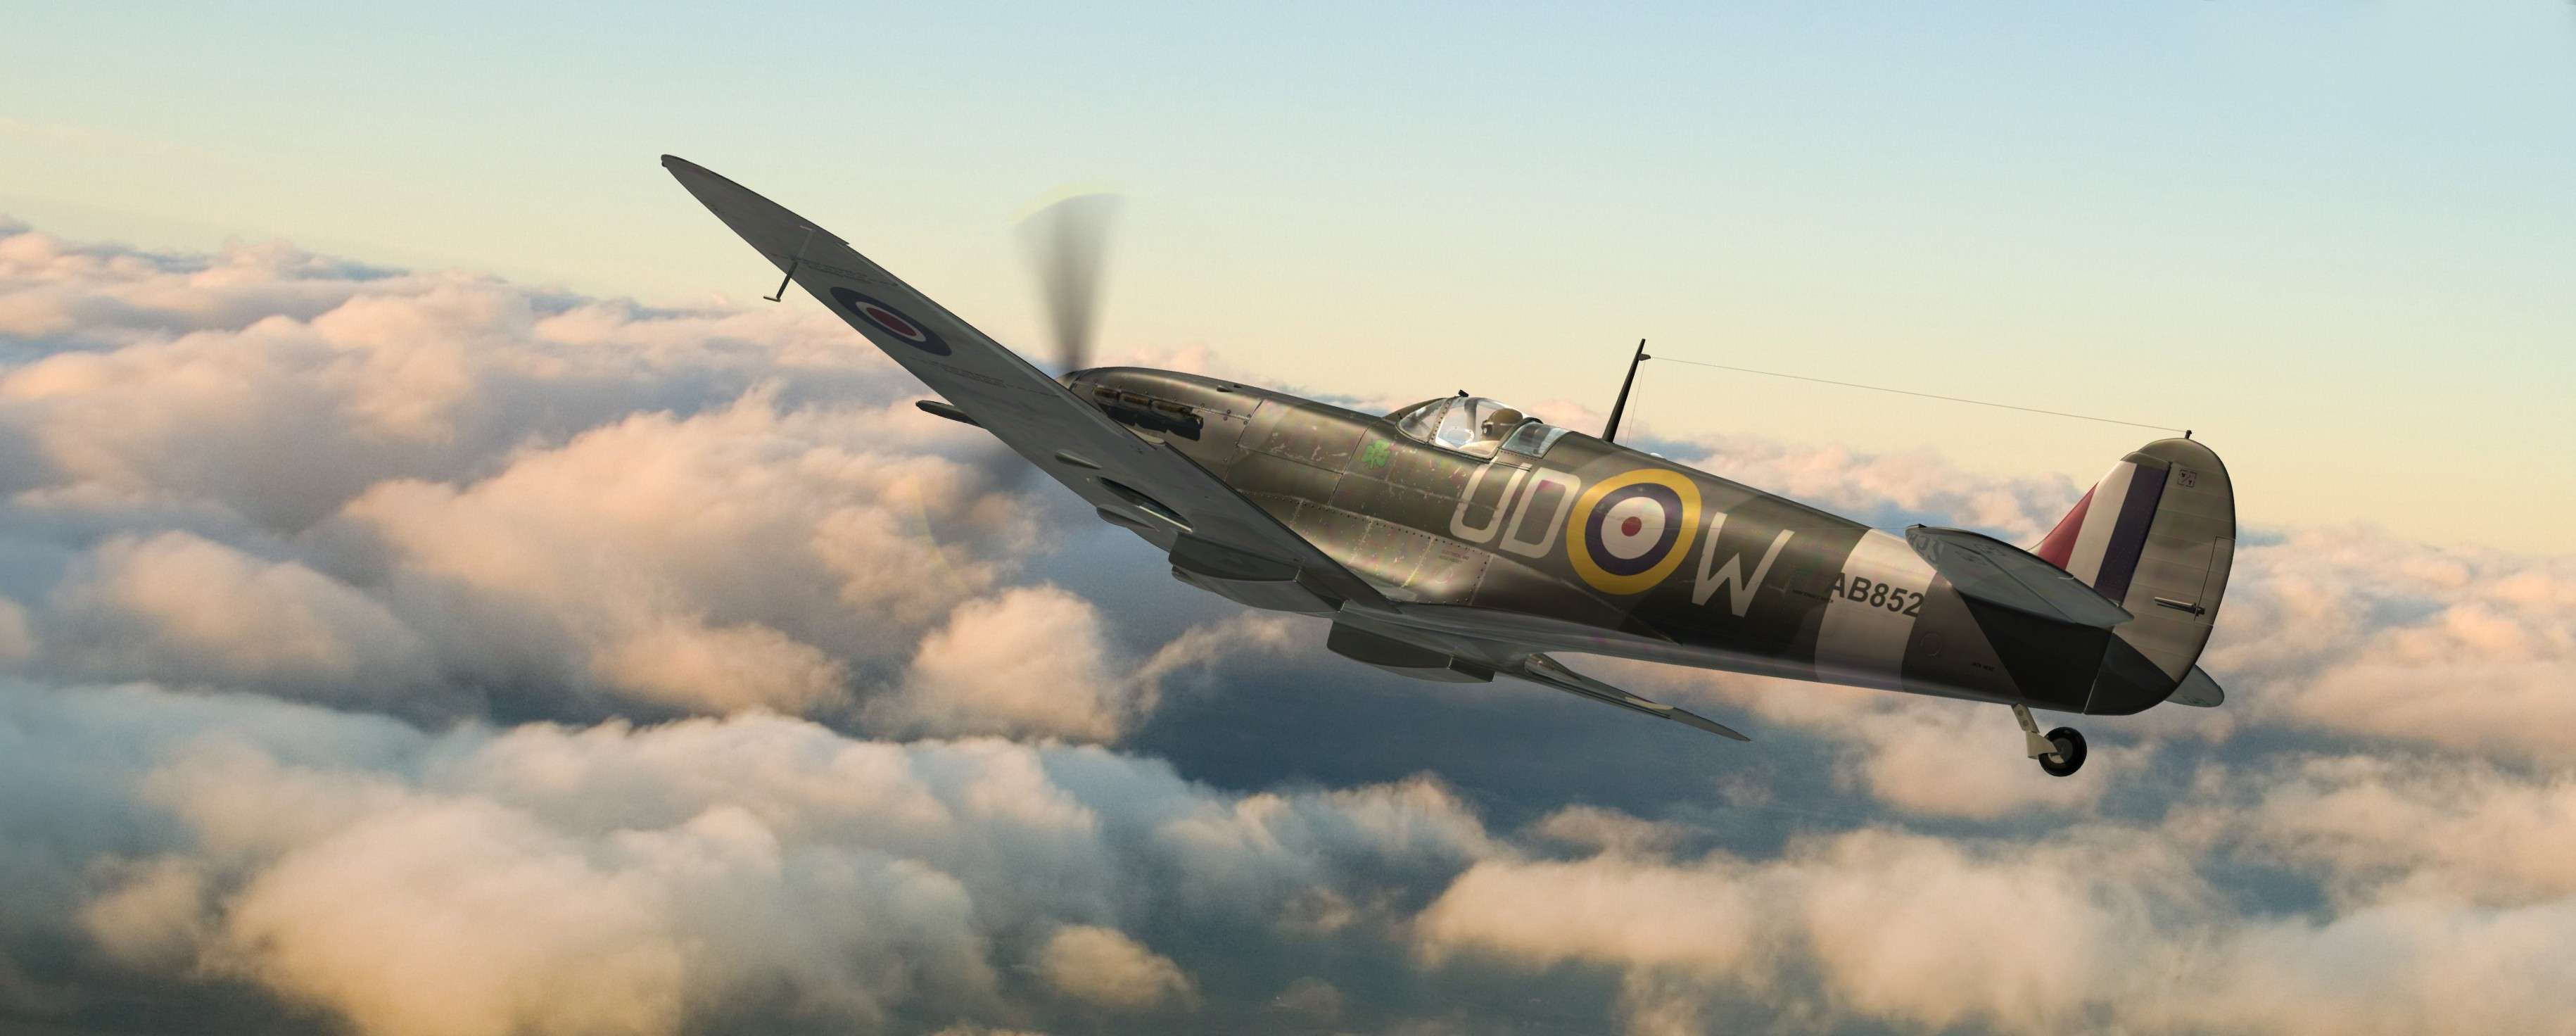 3661x1472 Spitfire Wallpaper (58 Wallpapers) – Wallpapers HD